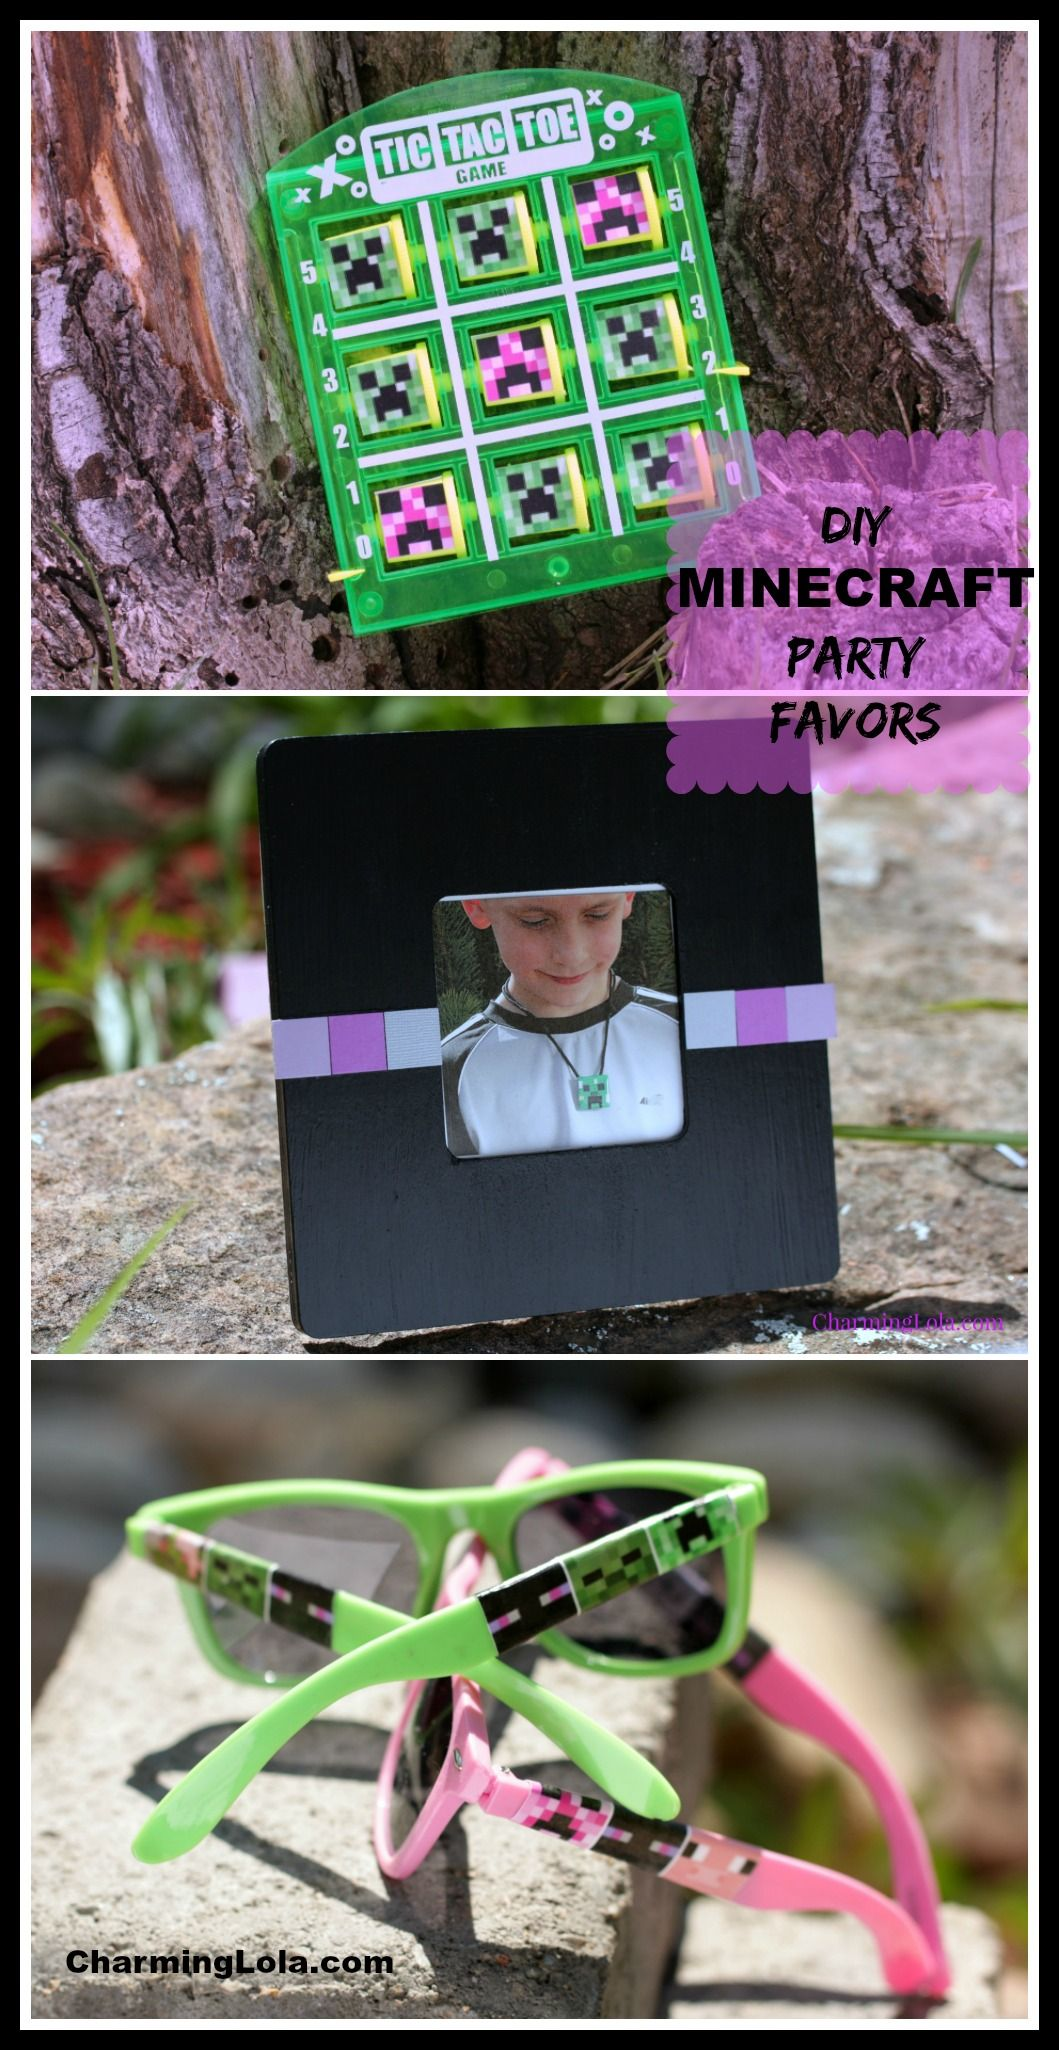 DIY Minecraft Party Favors include 6 DIY Minecraft party gift ideas